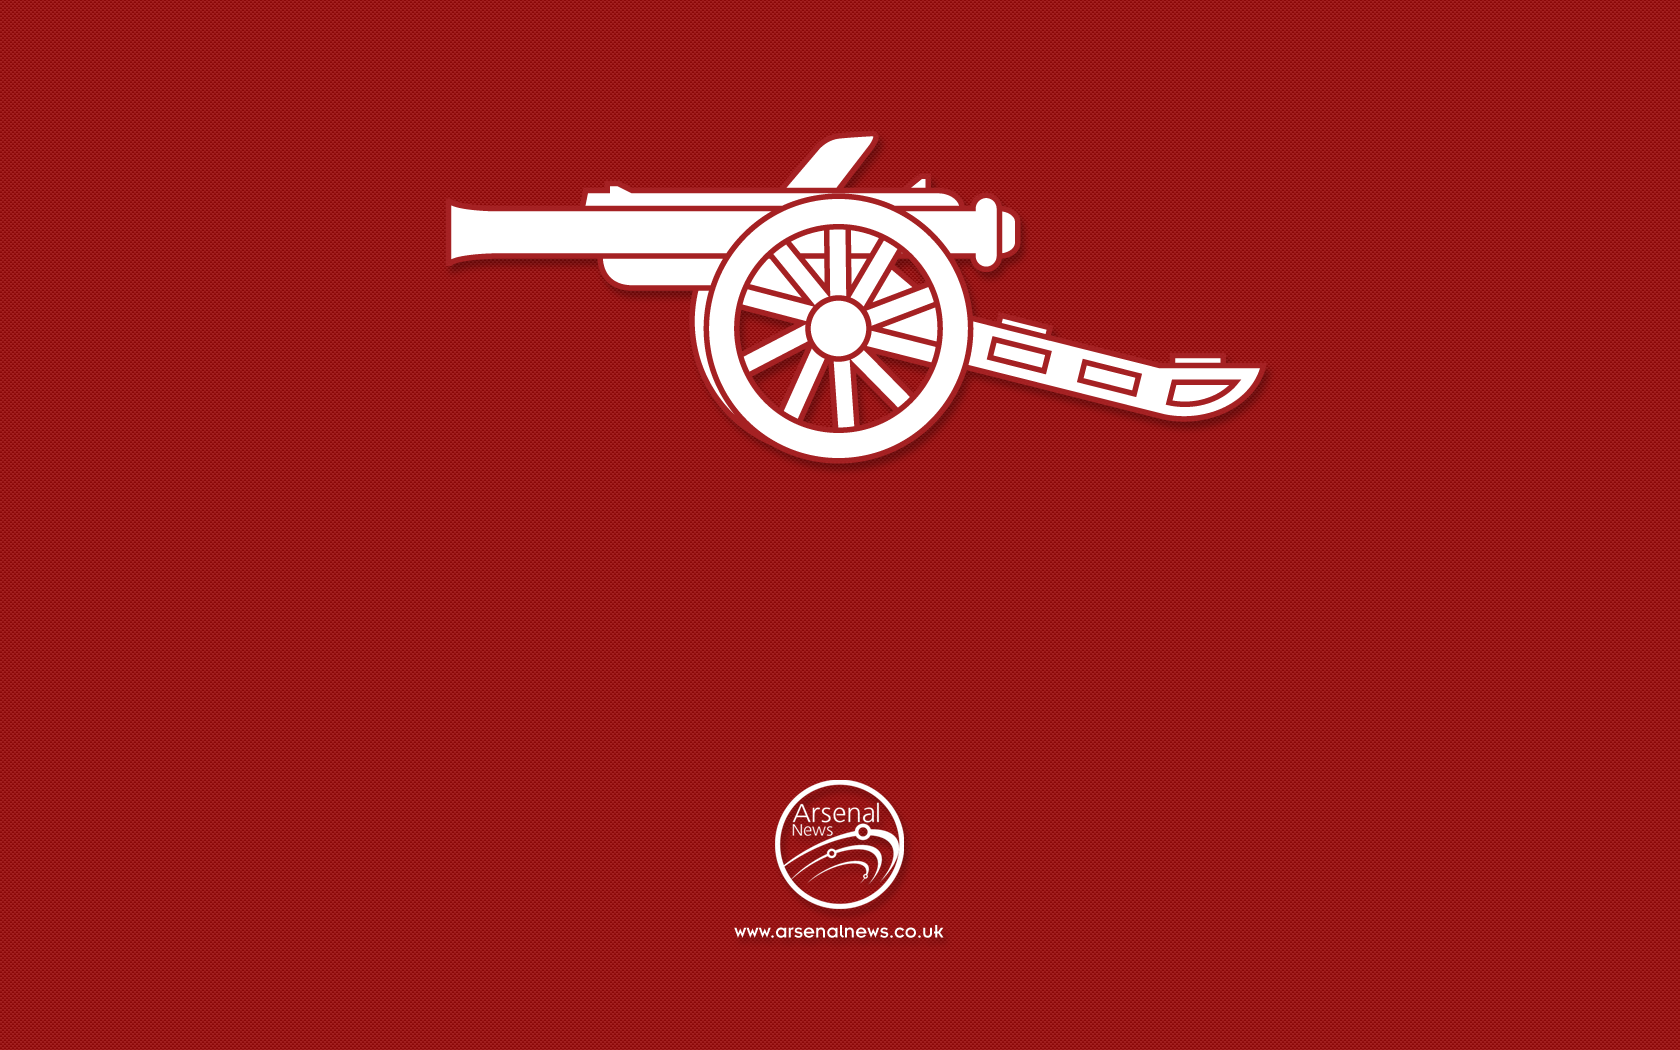 Arsenal Wallpaper Mobile Phones 2015 Wallpaper with 1680x1050 1680x1050